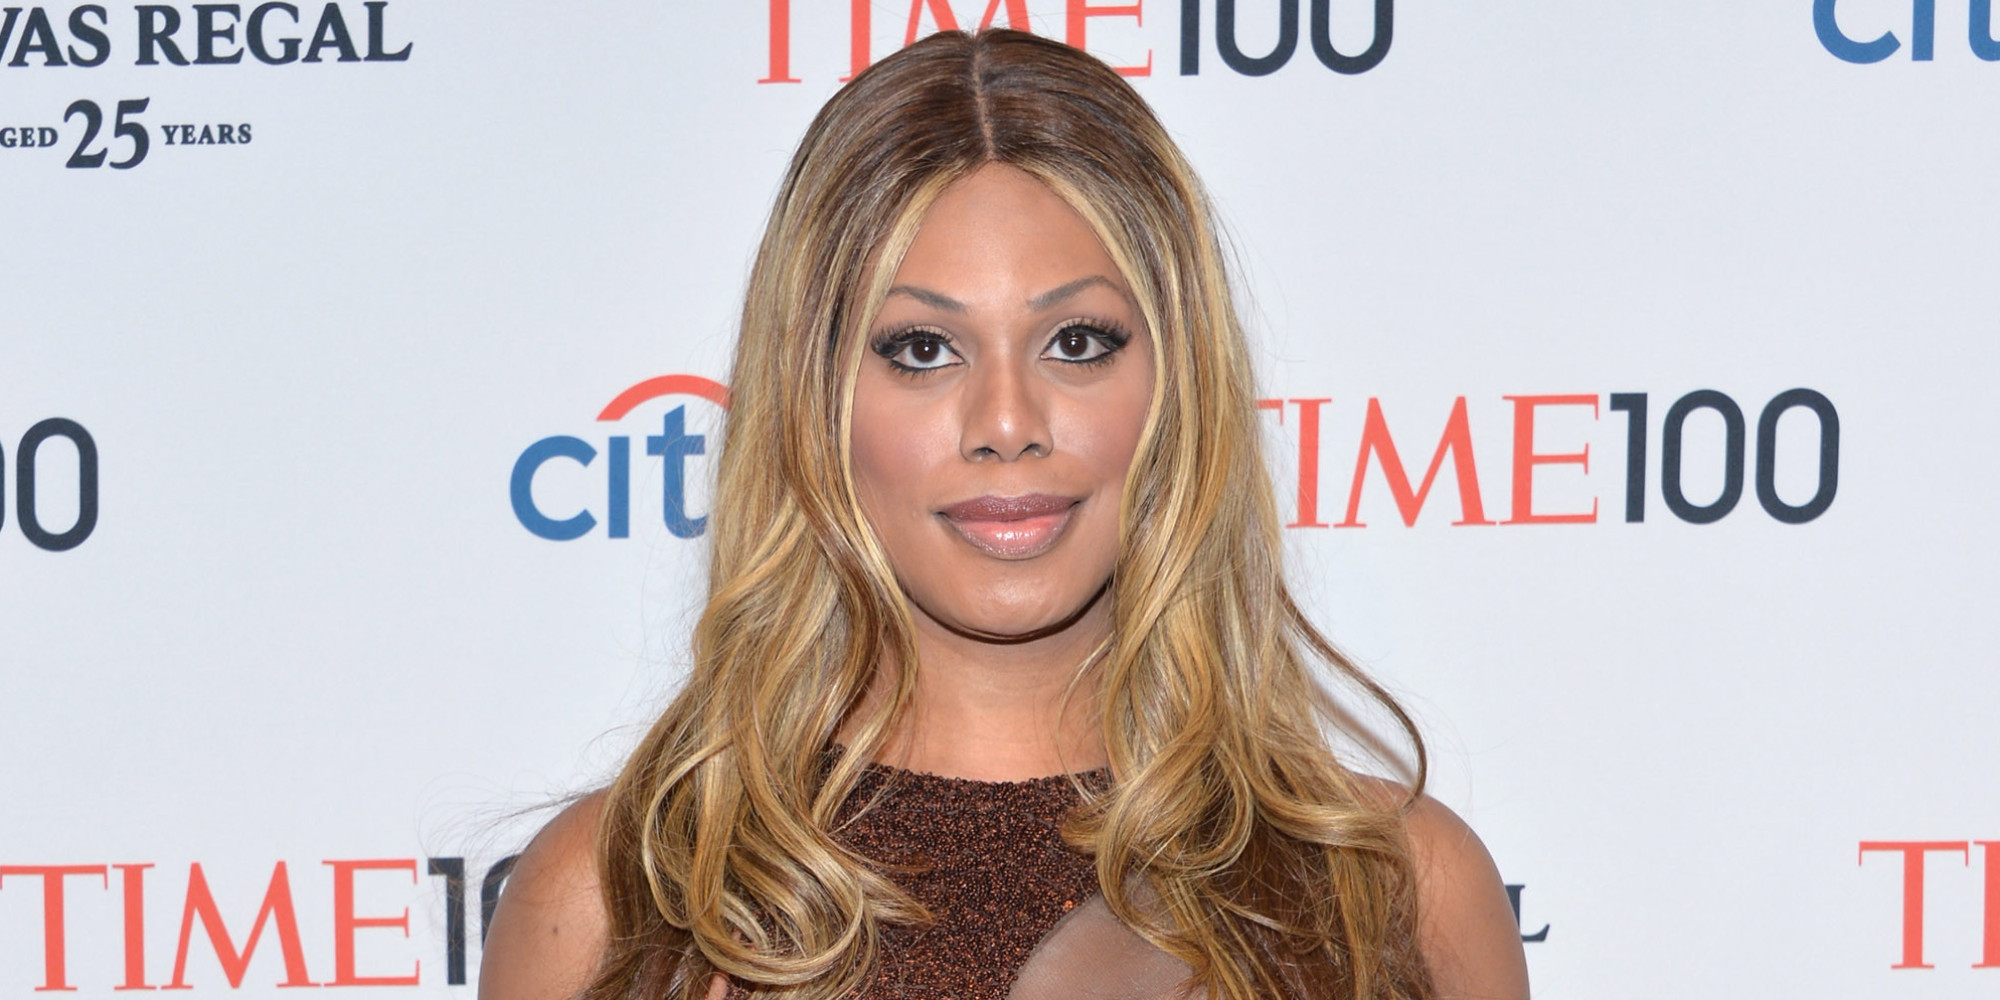 laverne gay dating site And laverne cox revealed  'sells lemonade for $2 a cup' at the nyc gay pride parade  bella thorne continues to hint she is dating teen gal pal tana mongaeu.